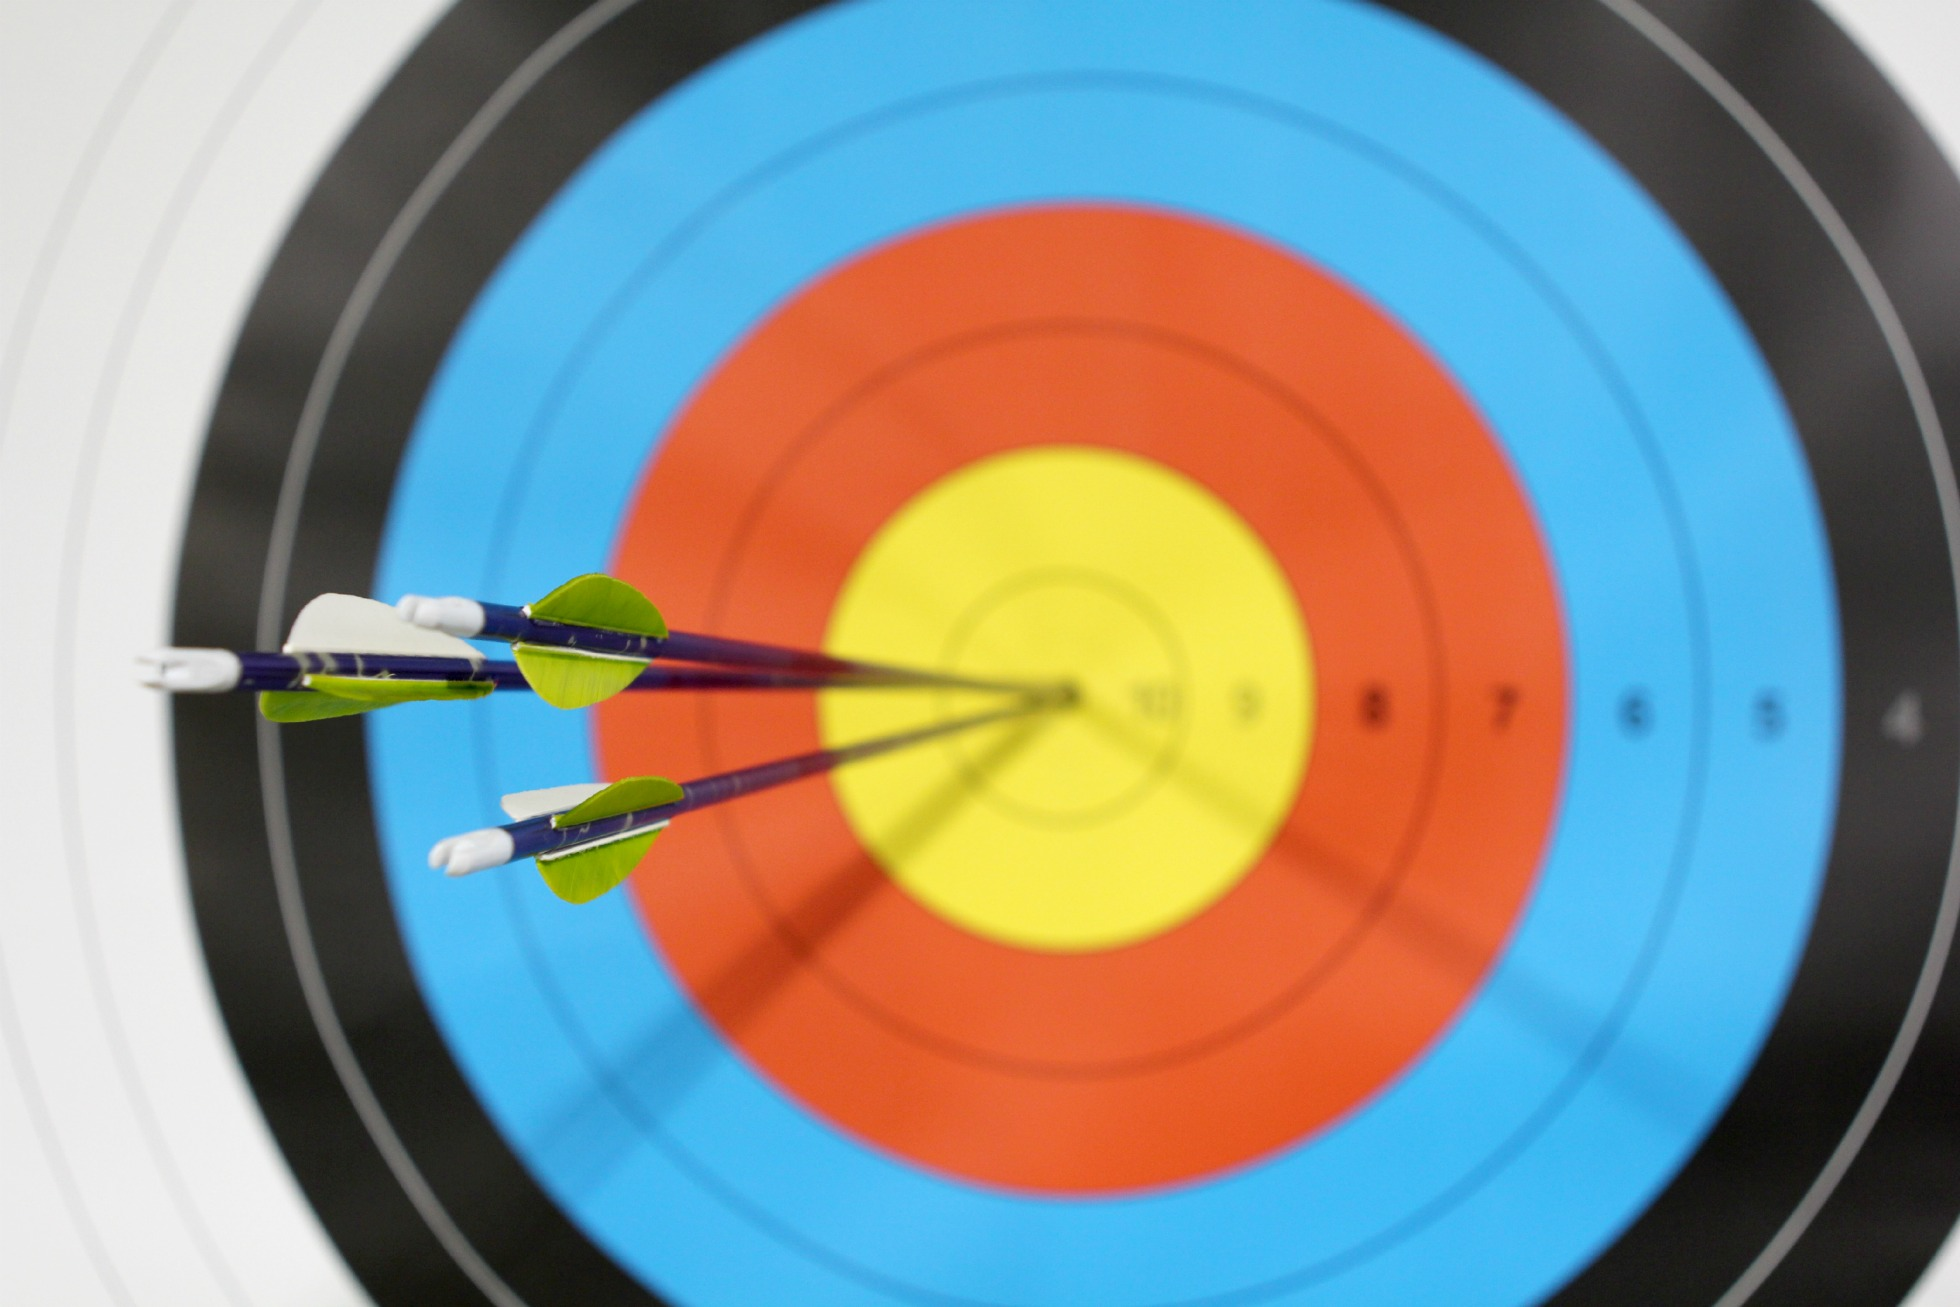 Archery High Quality Background on Wallpapers Vista